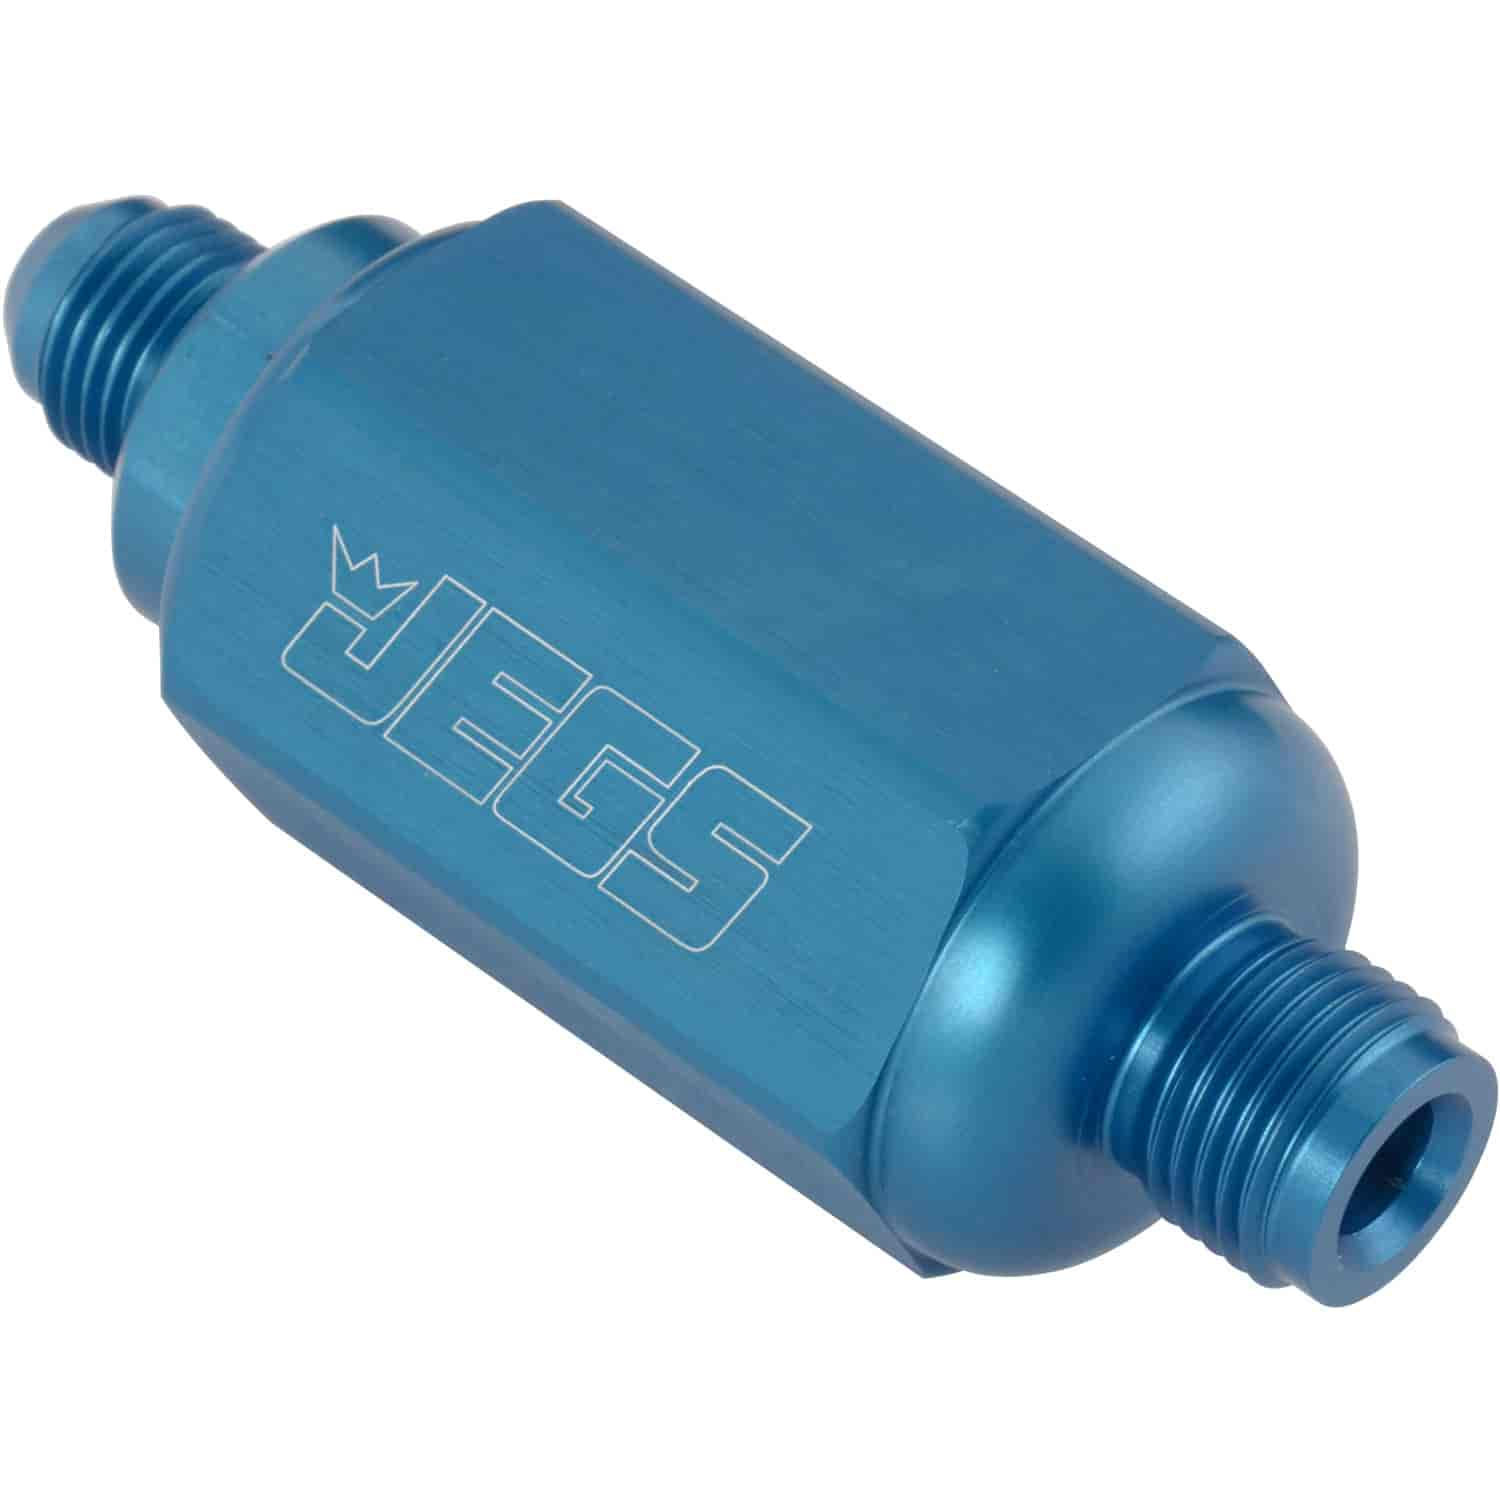 JEGS Performance Products 15067 - JEGS Compact Billet In-Line Fuel Filters, 2-5/16'' Long